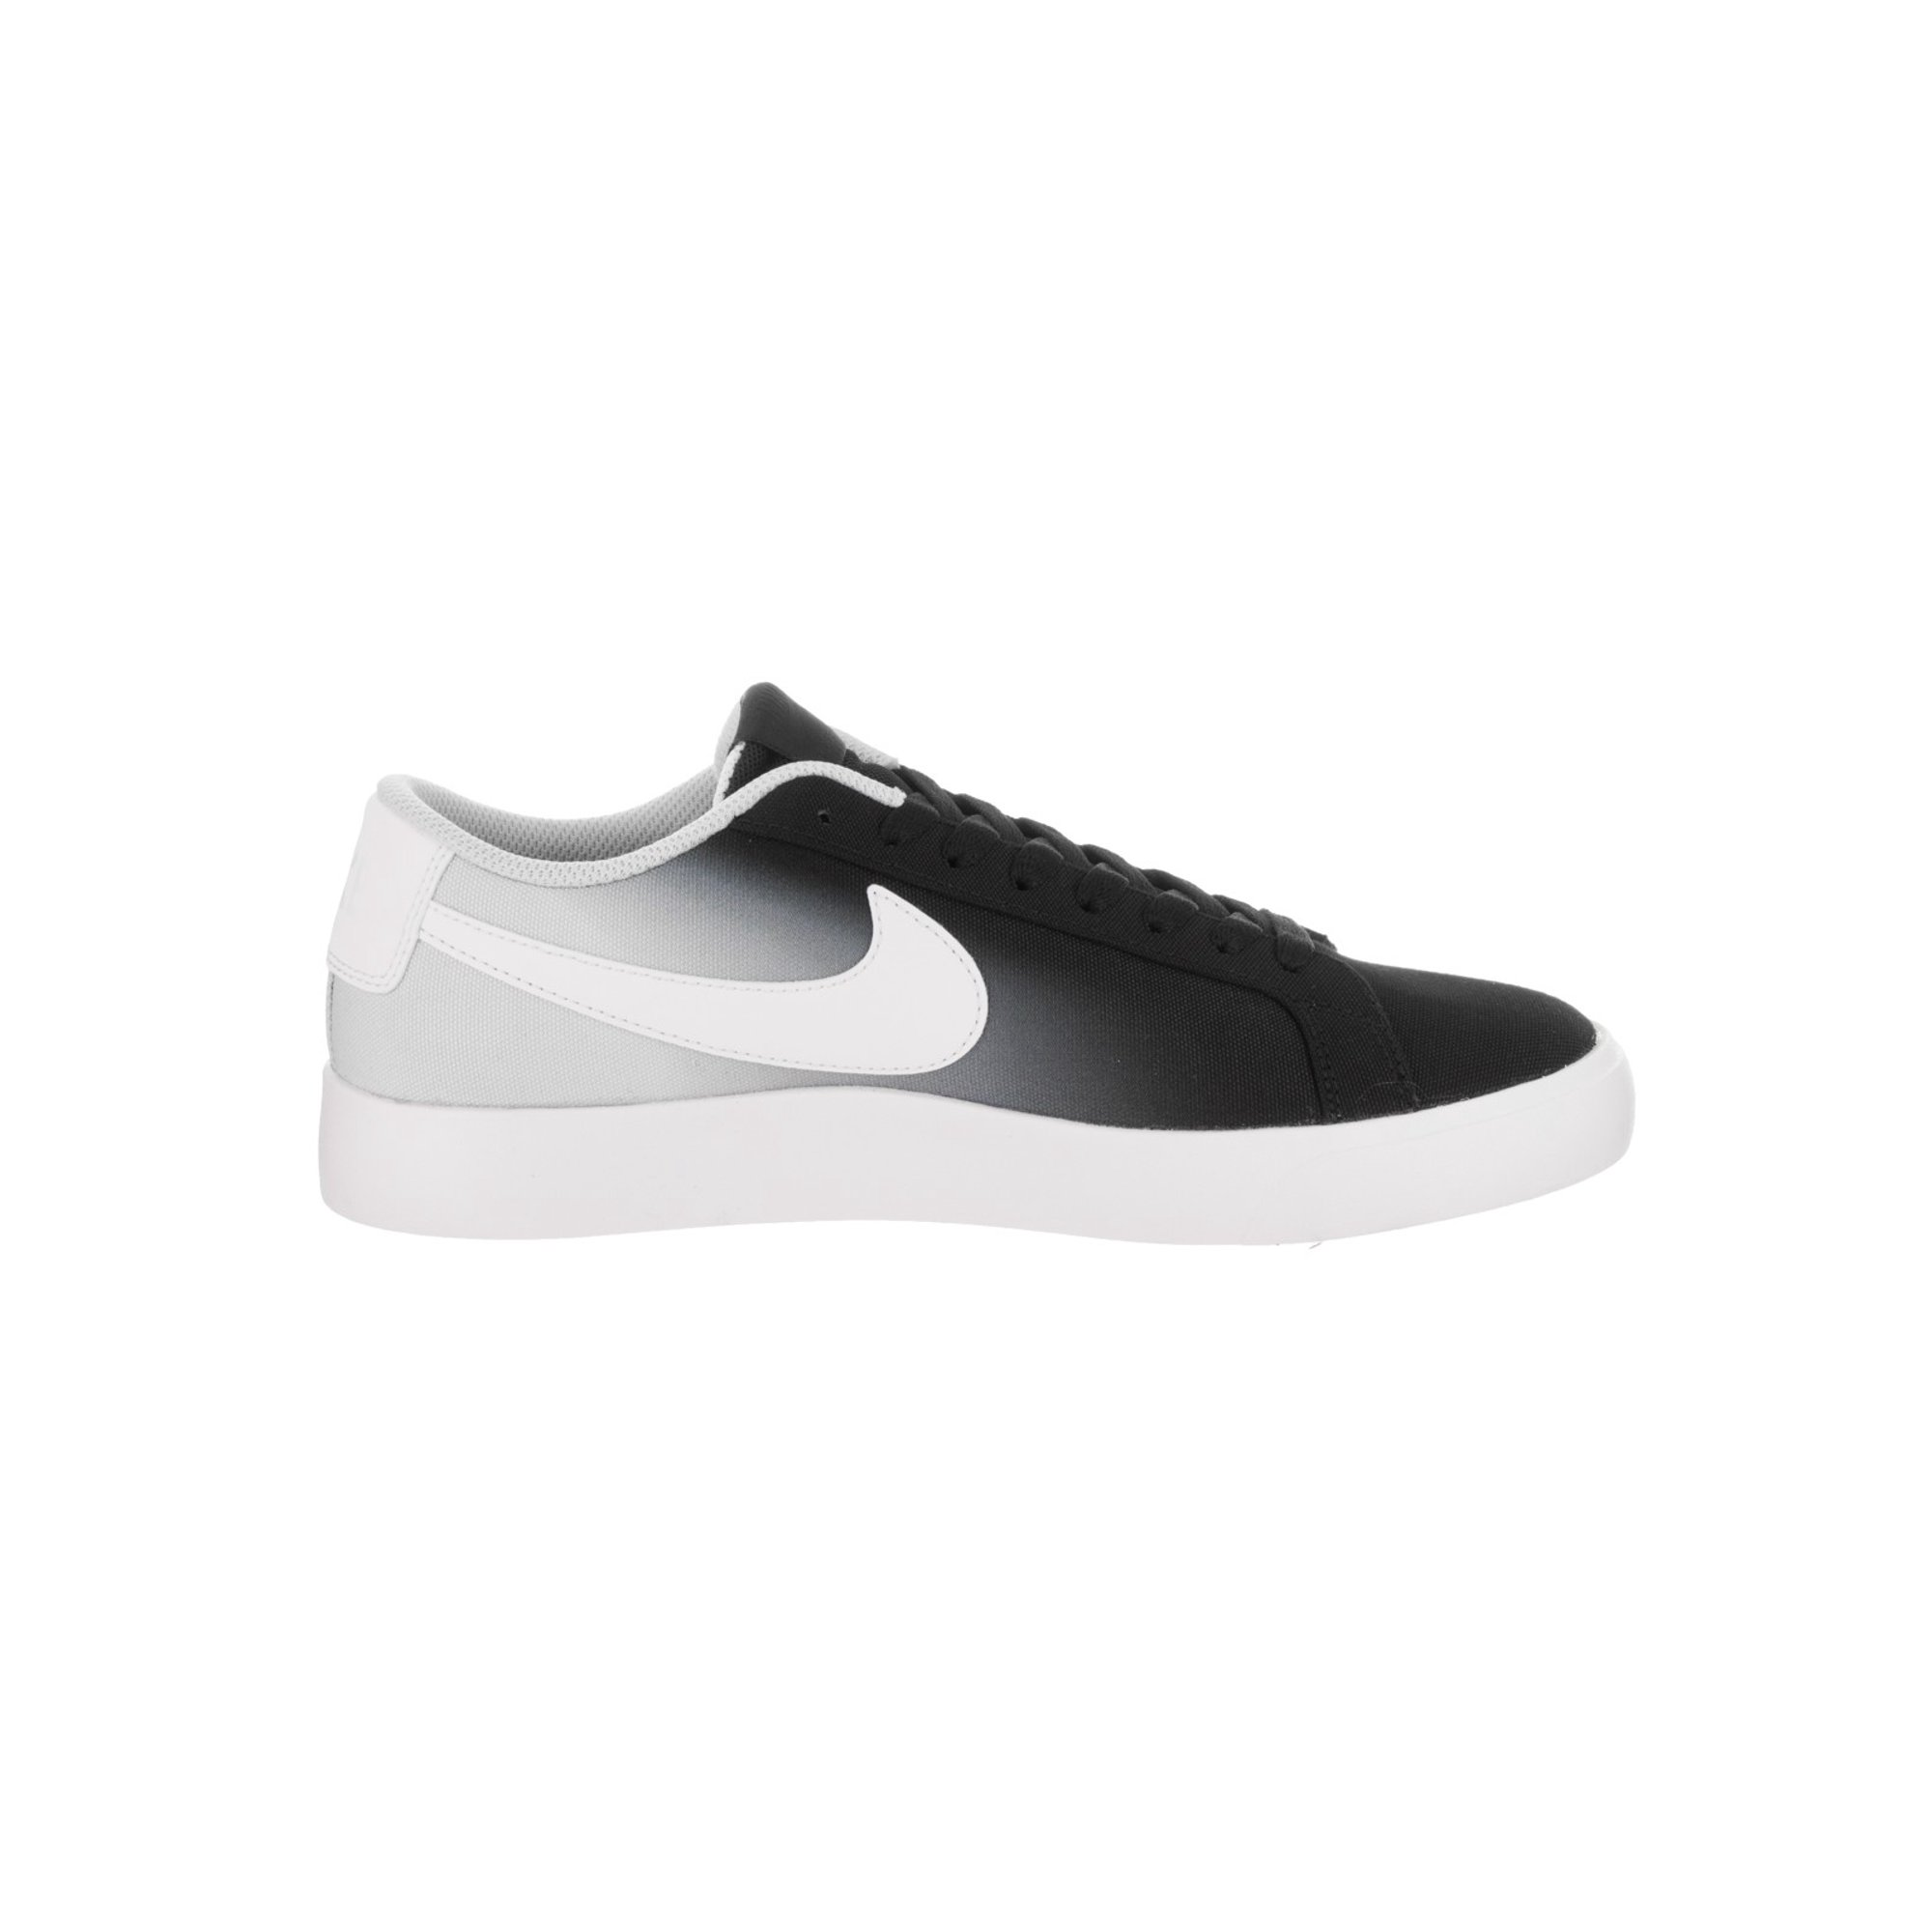 more photos 12ffa ea0c2 Nike Men s Sb Blazer Vapor Black   White Pure Platinum Ankle-High Canvas  Skateboarding Shoe - 9.5M   Walmart Canada